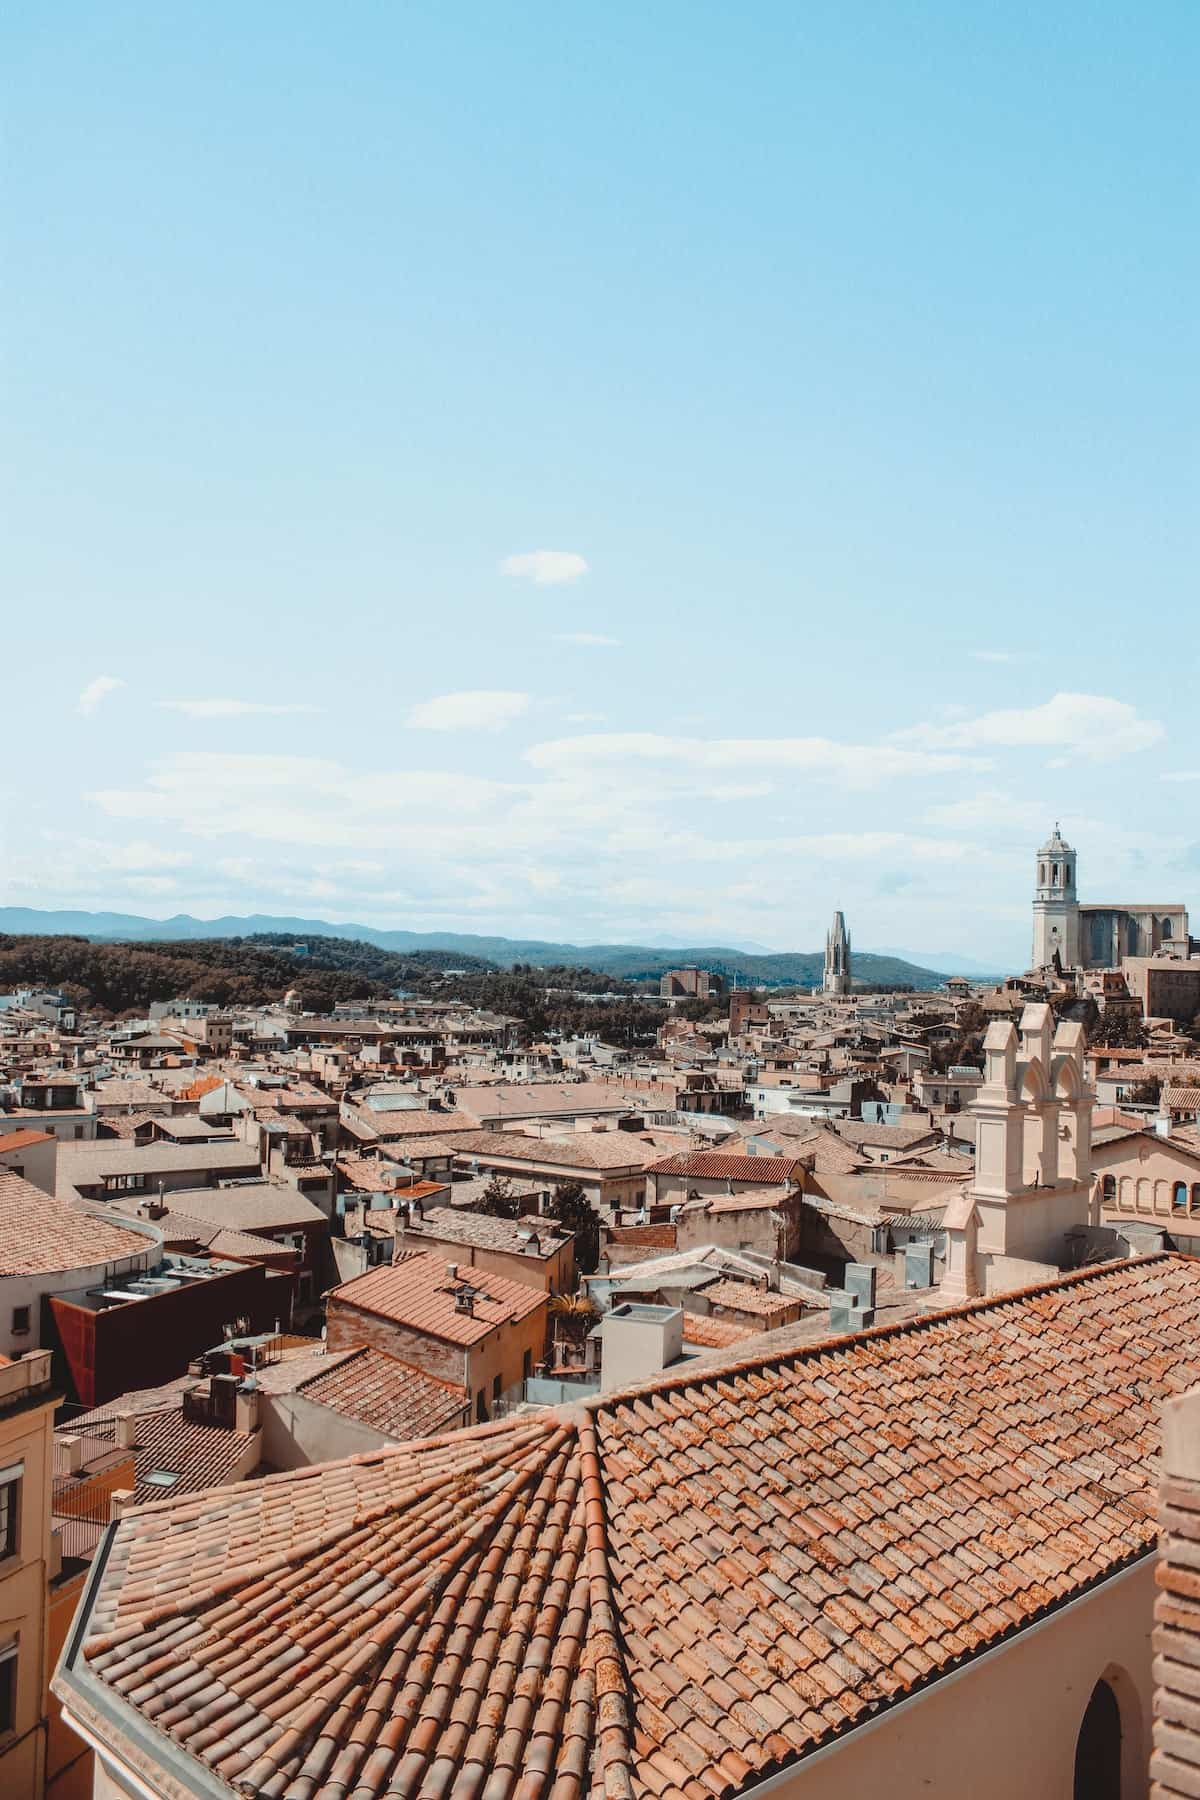 Overhead view of medieval buildings with red tiled roofs in Girona, Spain on a clear day